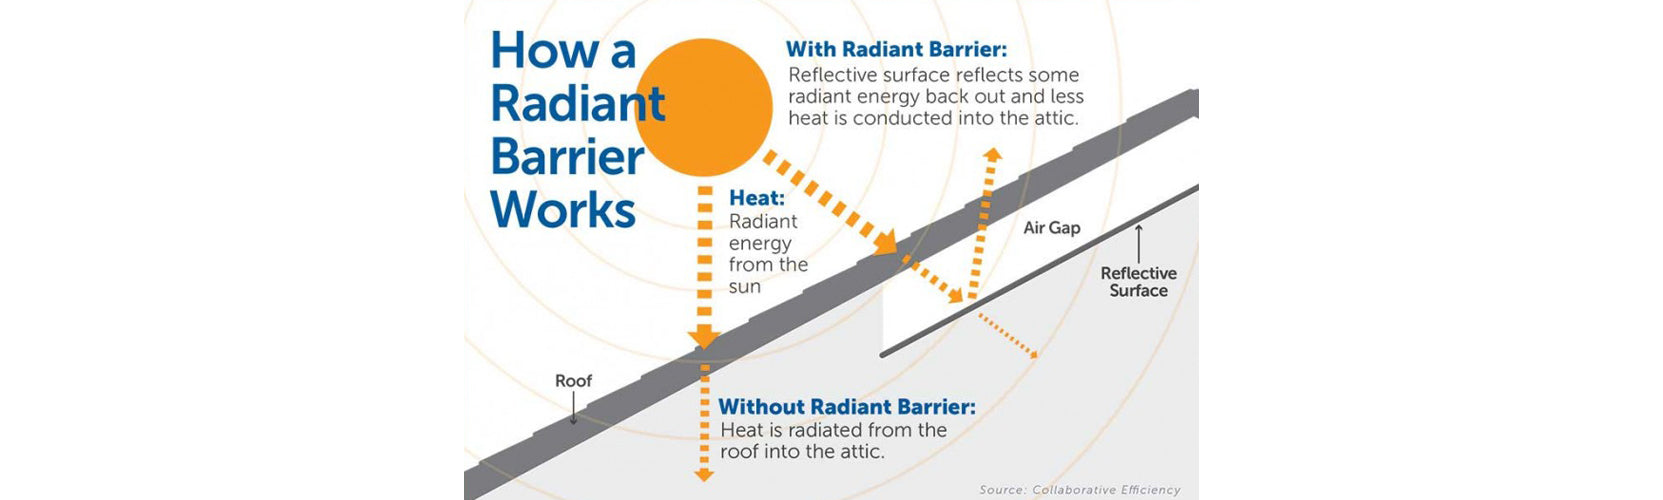 Why Consider Radiant Barrier?